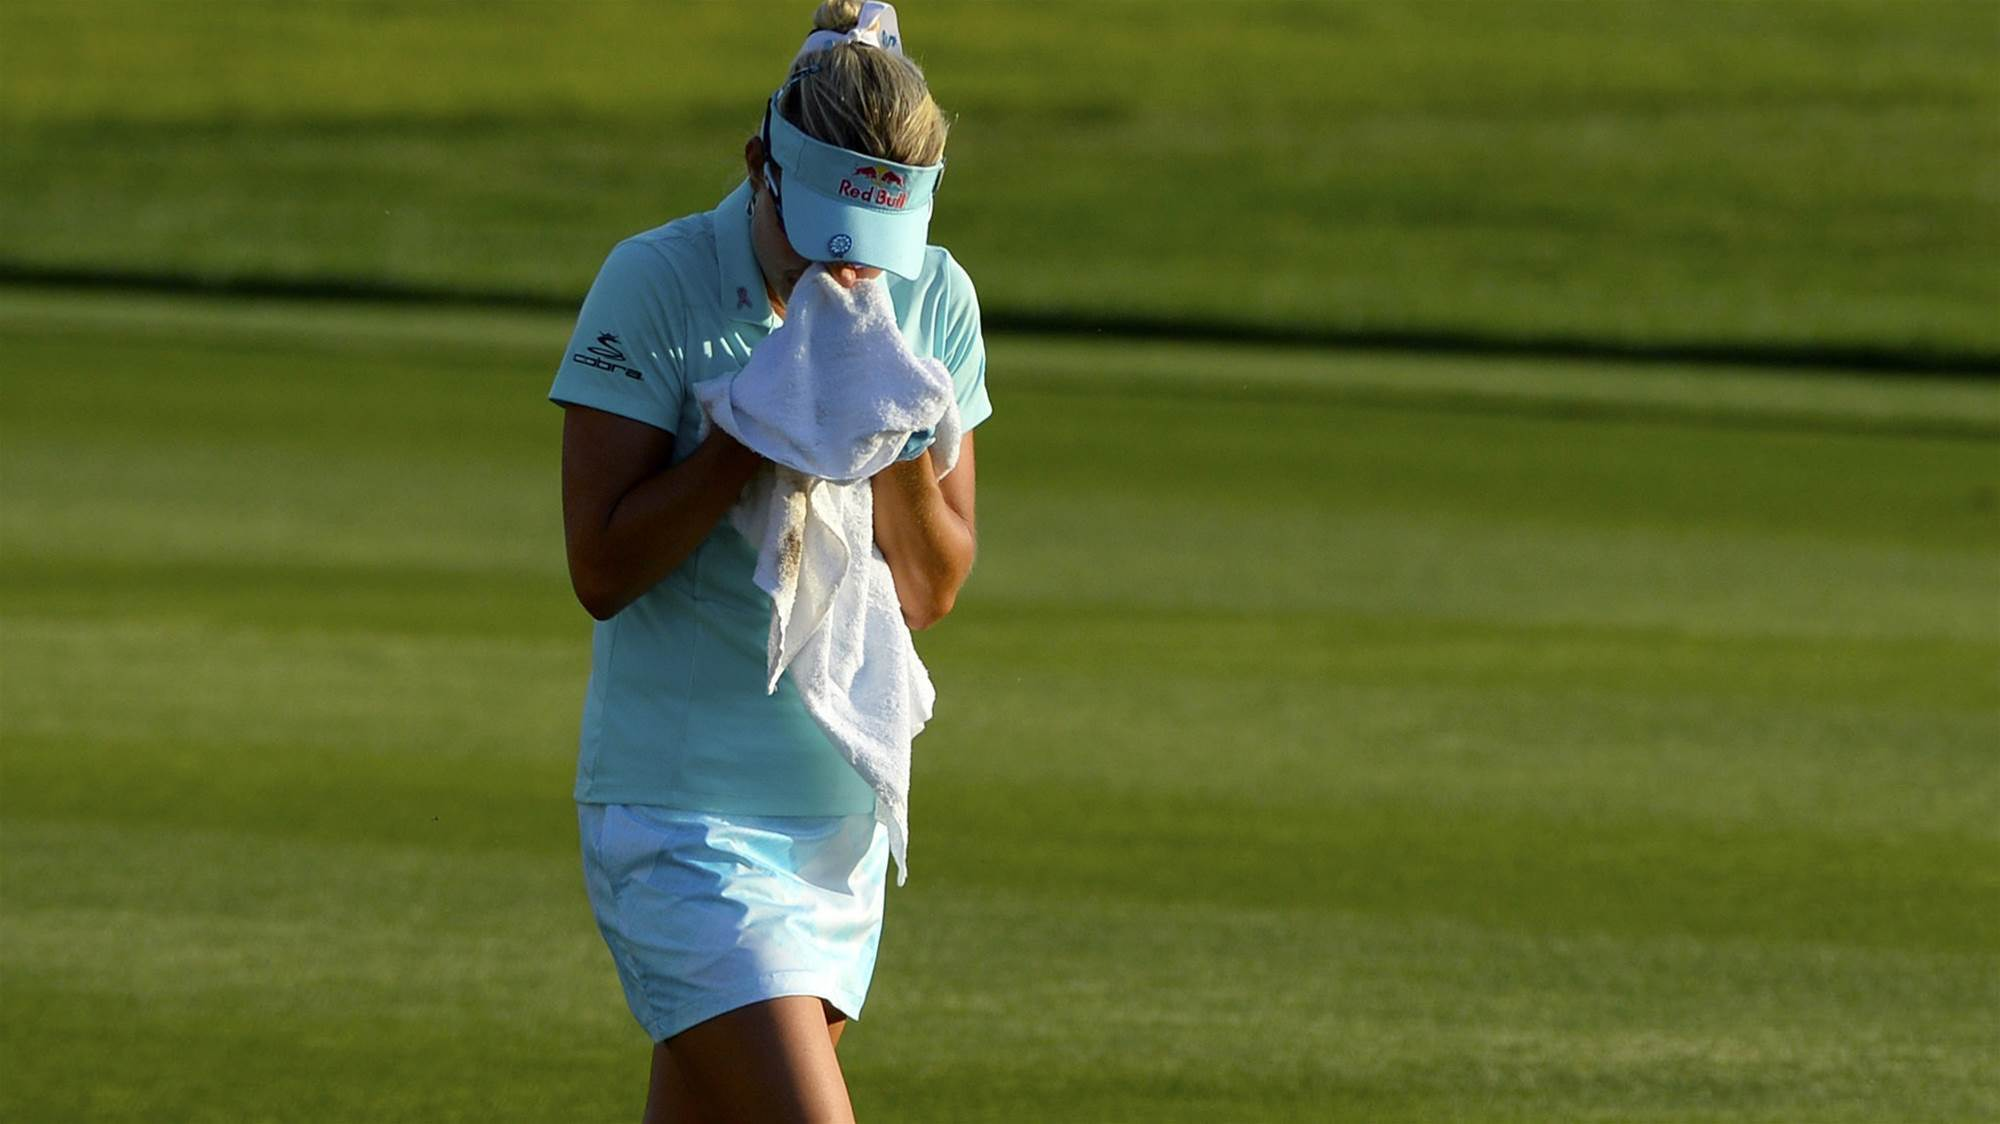 R&A, USGA introduce new rule to limit video reviews